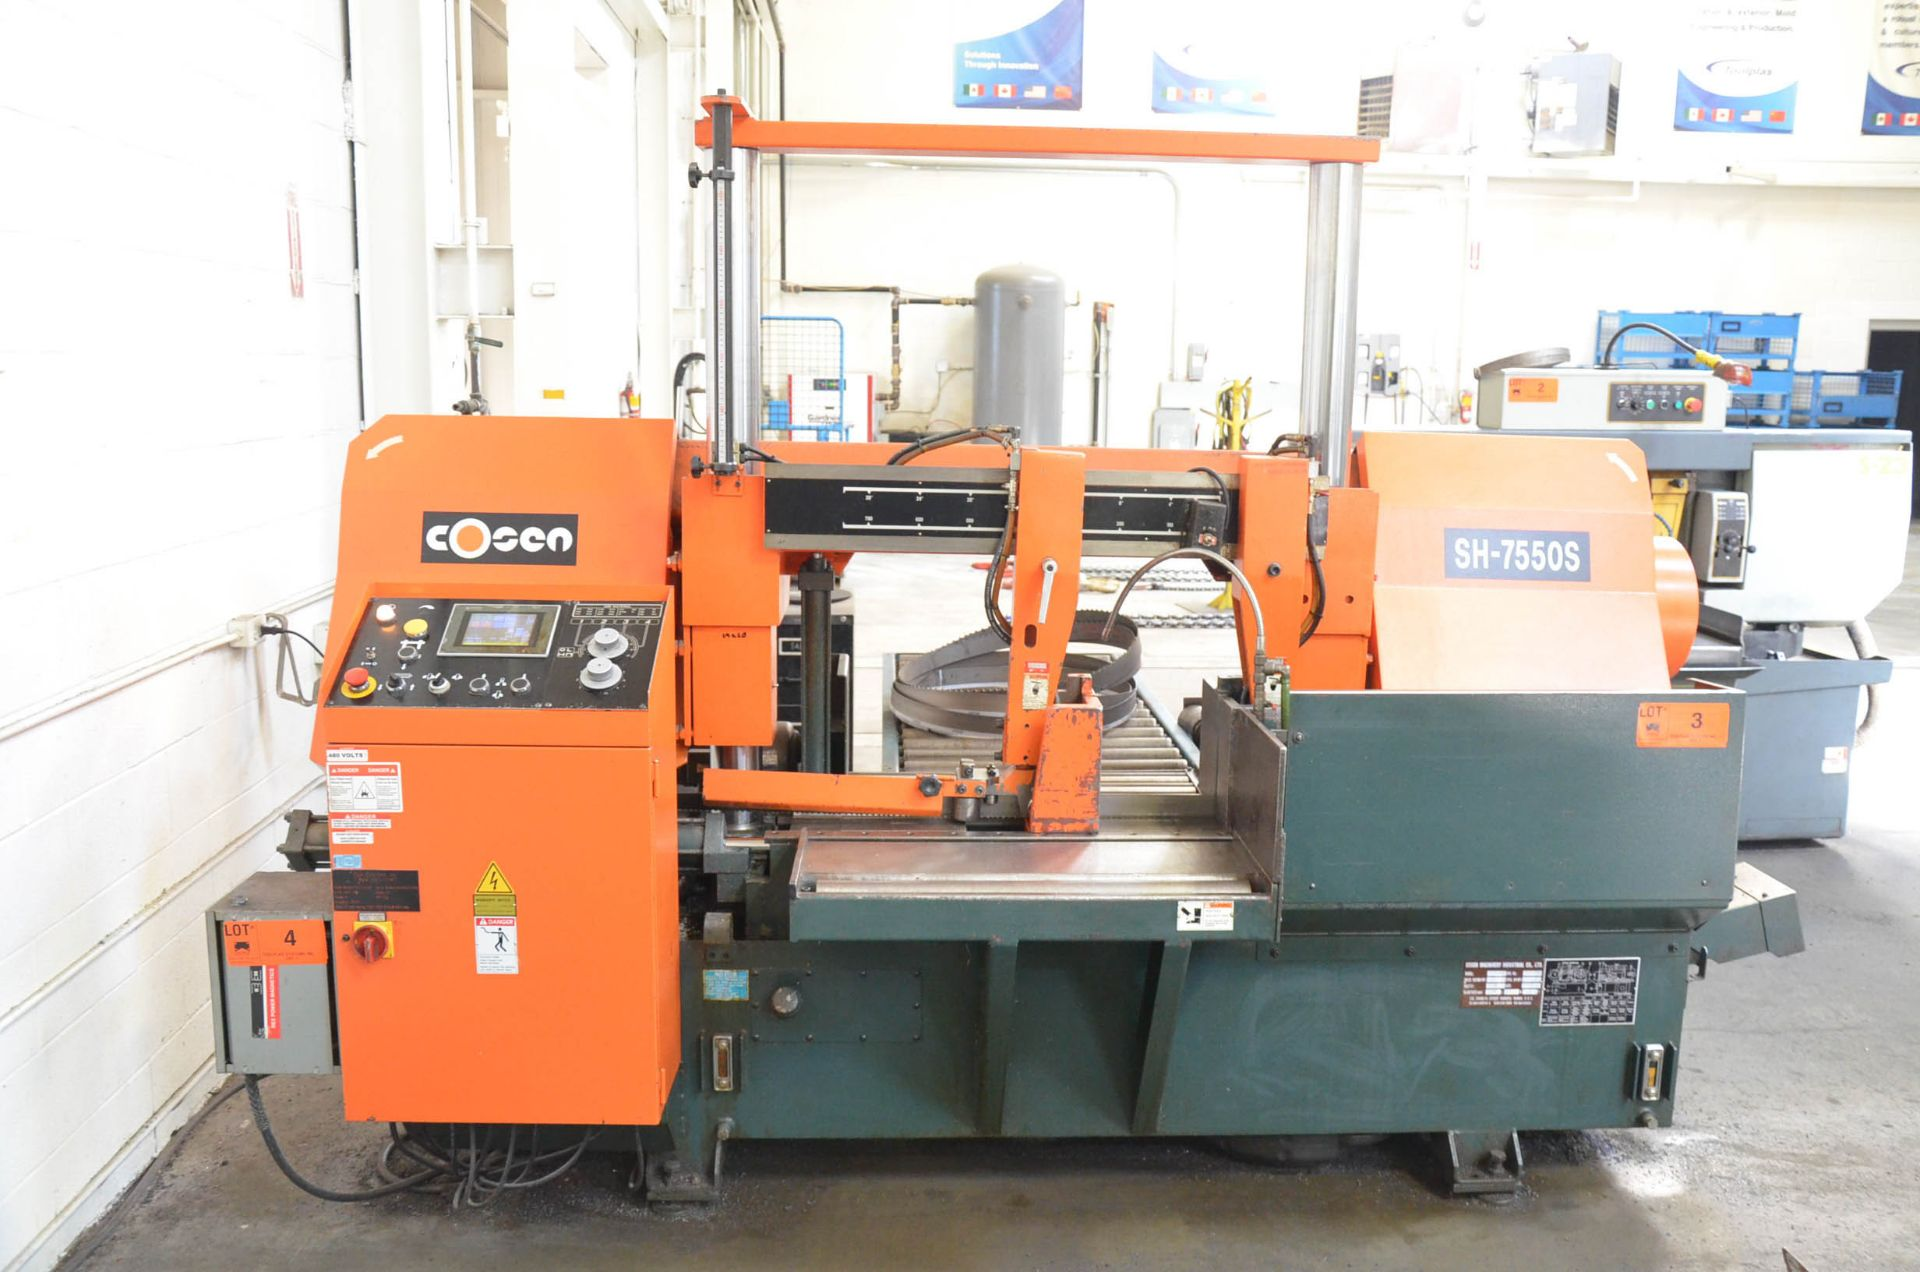 """COSEN (2012) SH-7550S AUTOMATIC DOUBLE COLUMN HORIZONTAL BAND SAW WITH 28"""" CAPACITY, HITECH TOUCH - Image 2 of 7"""